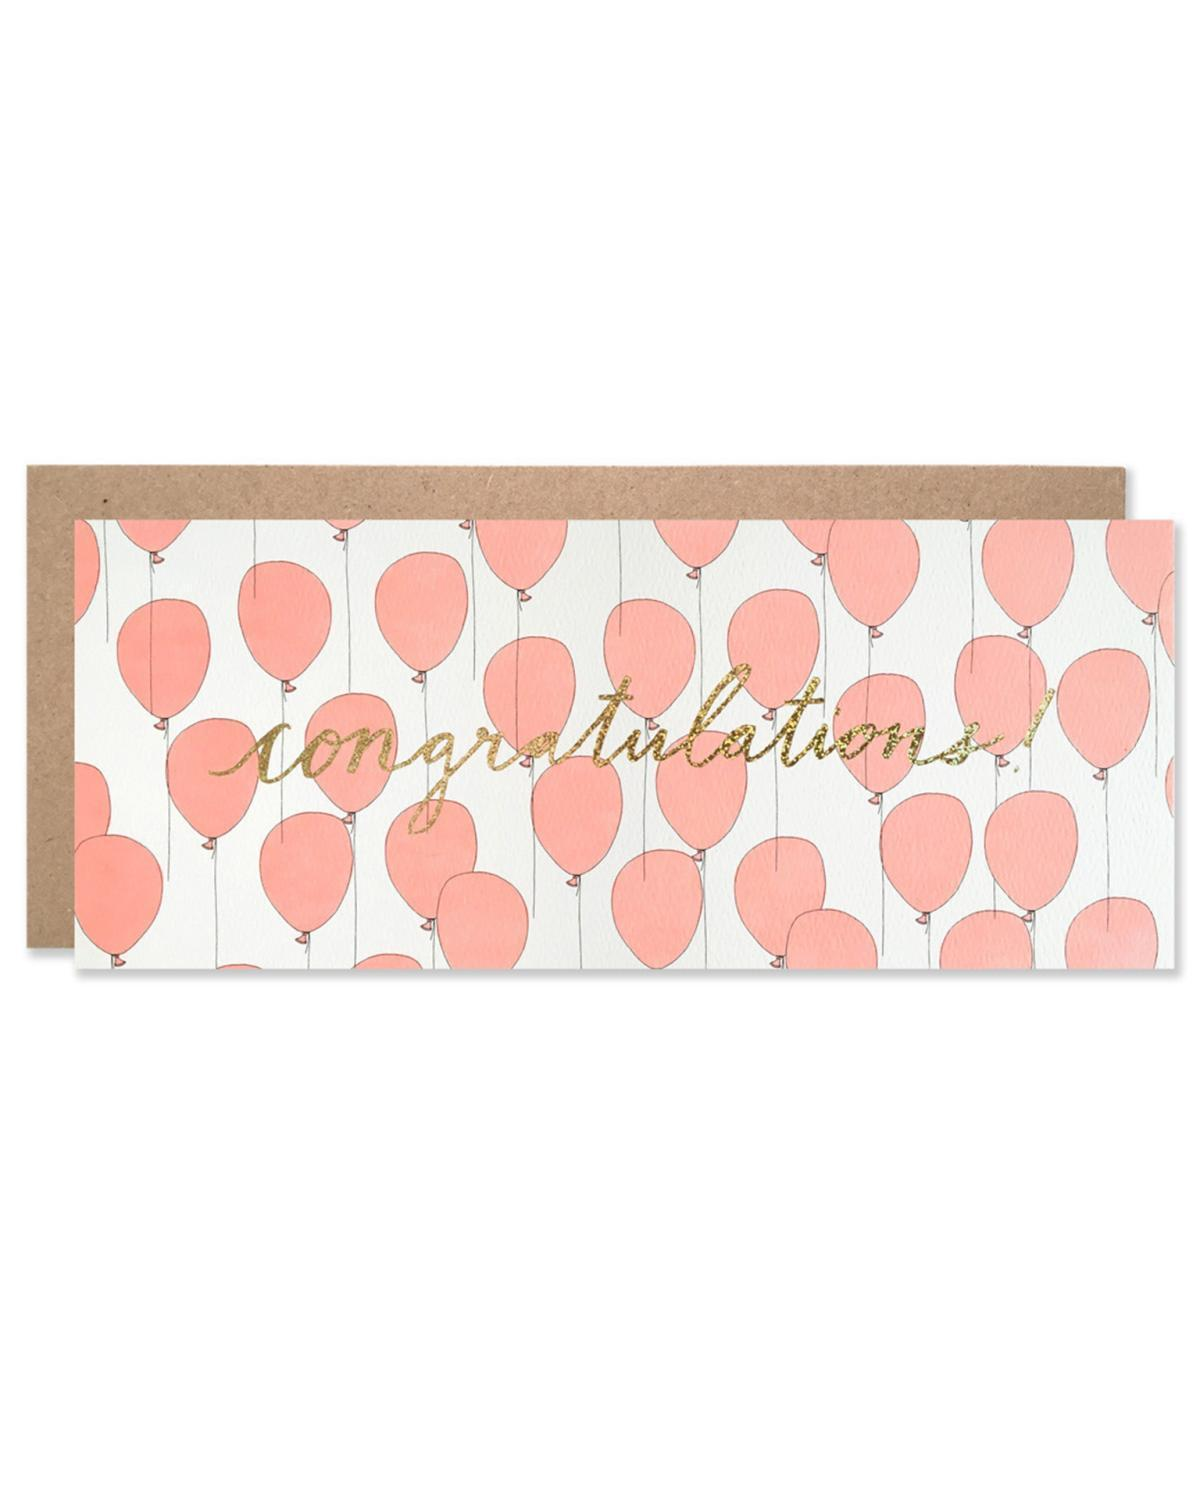 Little hartland brooklyn paper+party Congratulations Balloons with Gold Glitter Foil